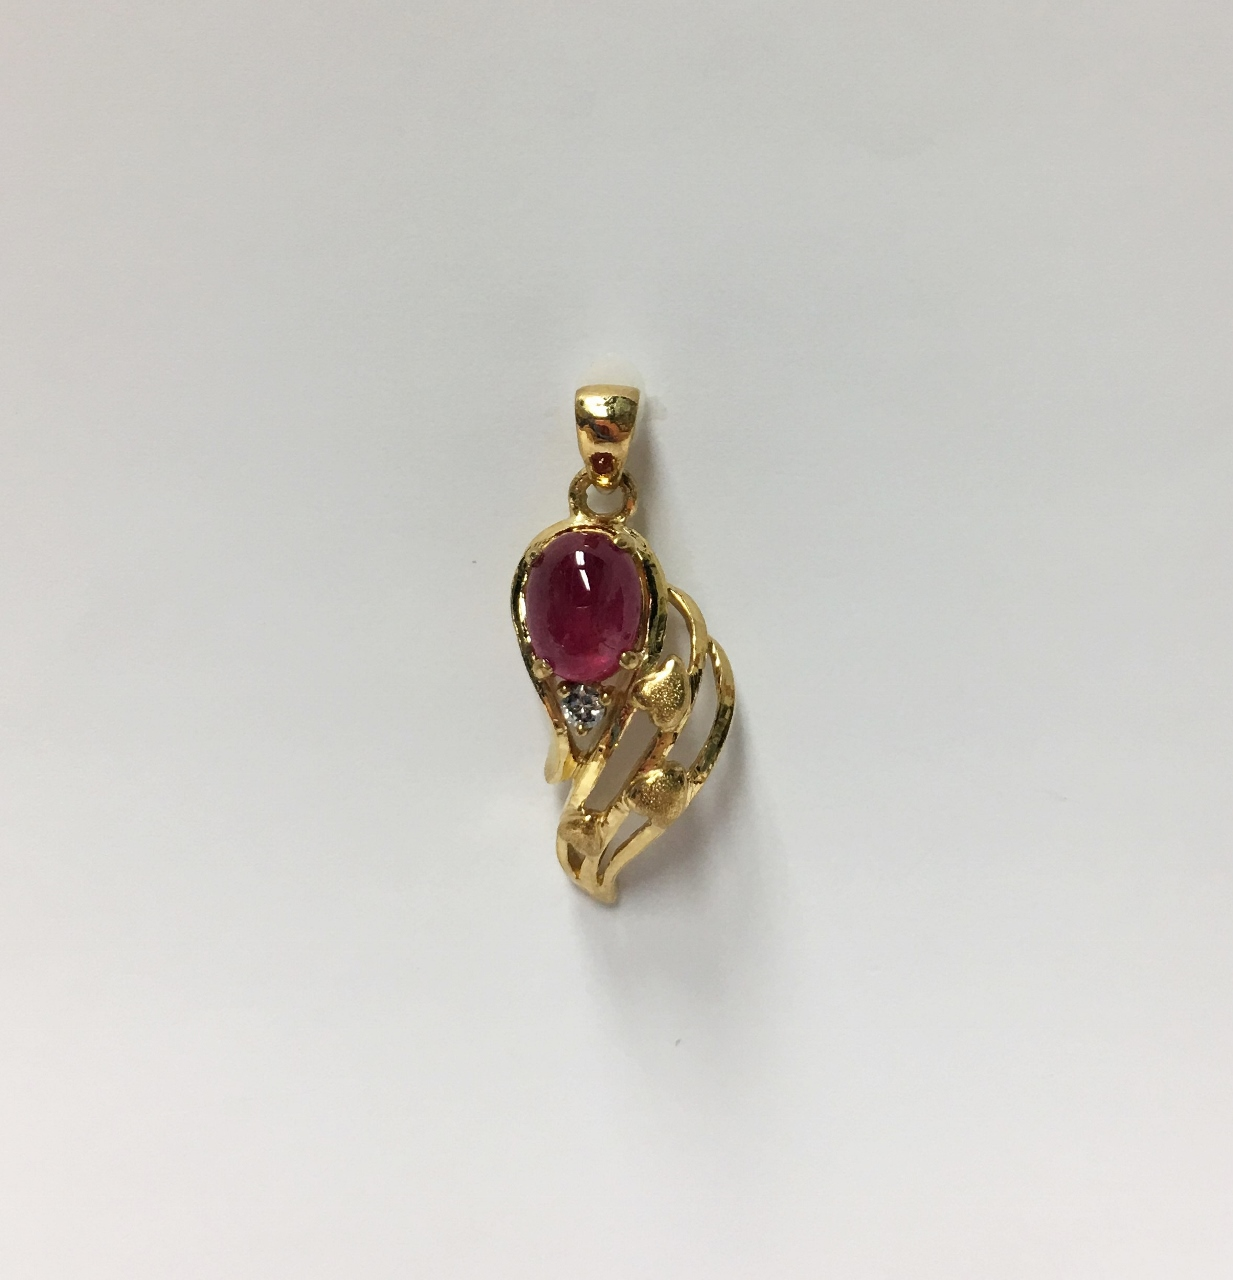 22K Yellow Gold Ruby Pendant